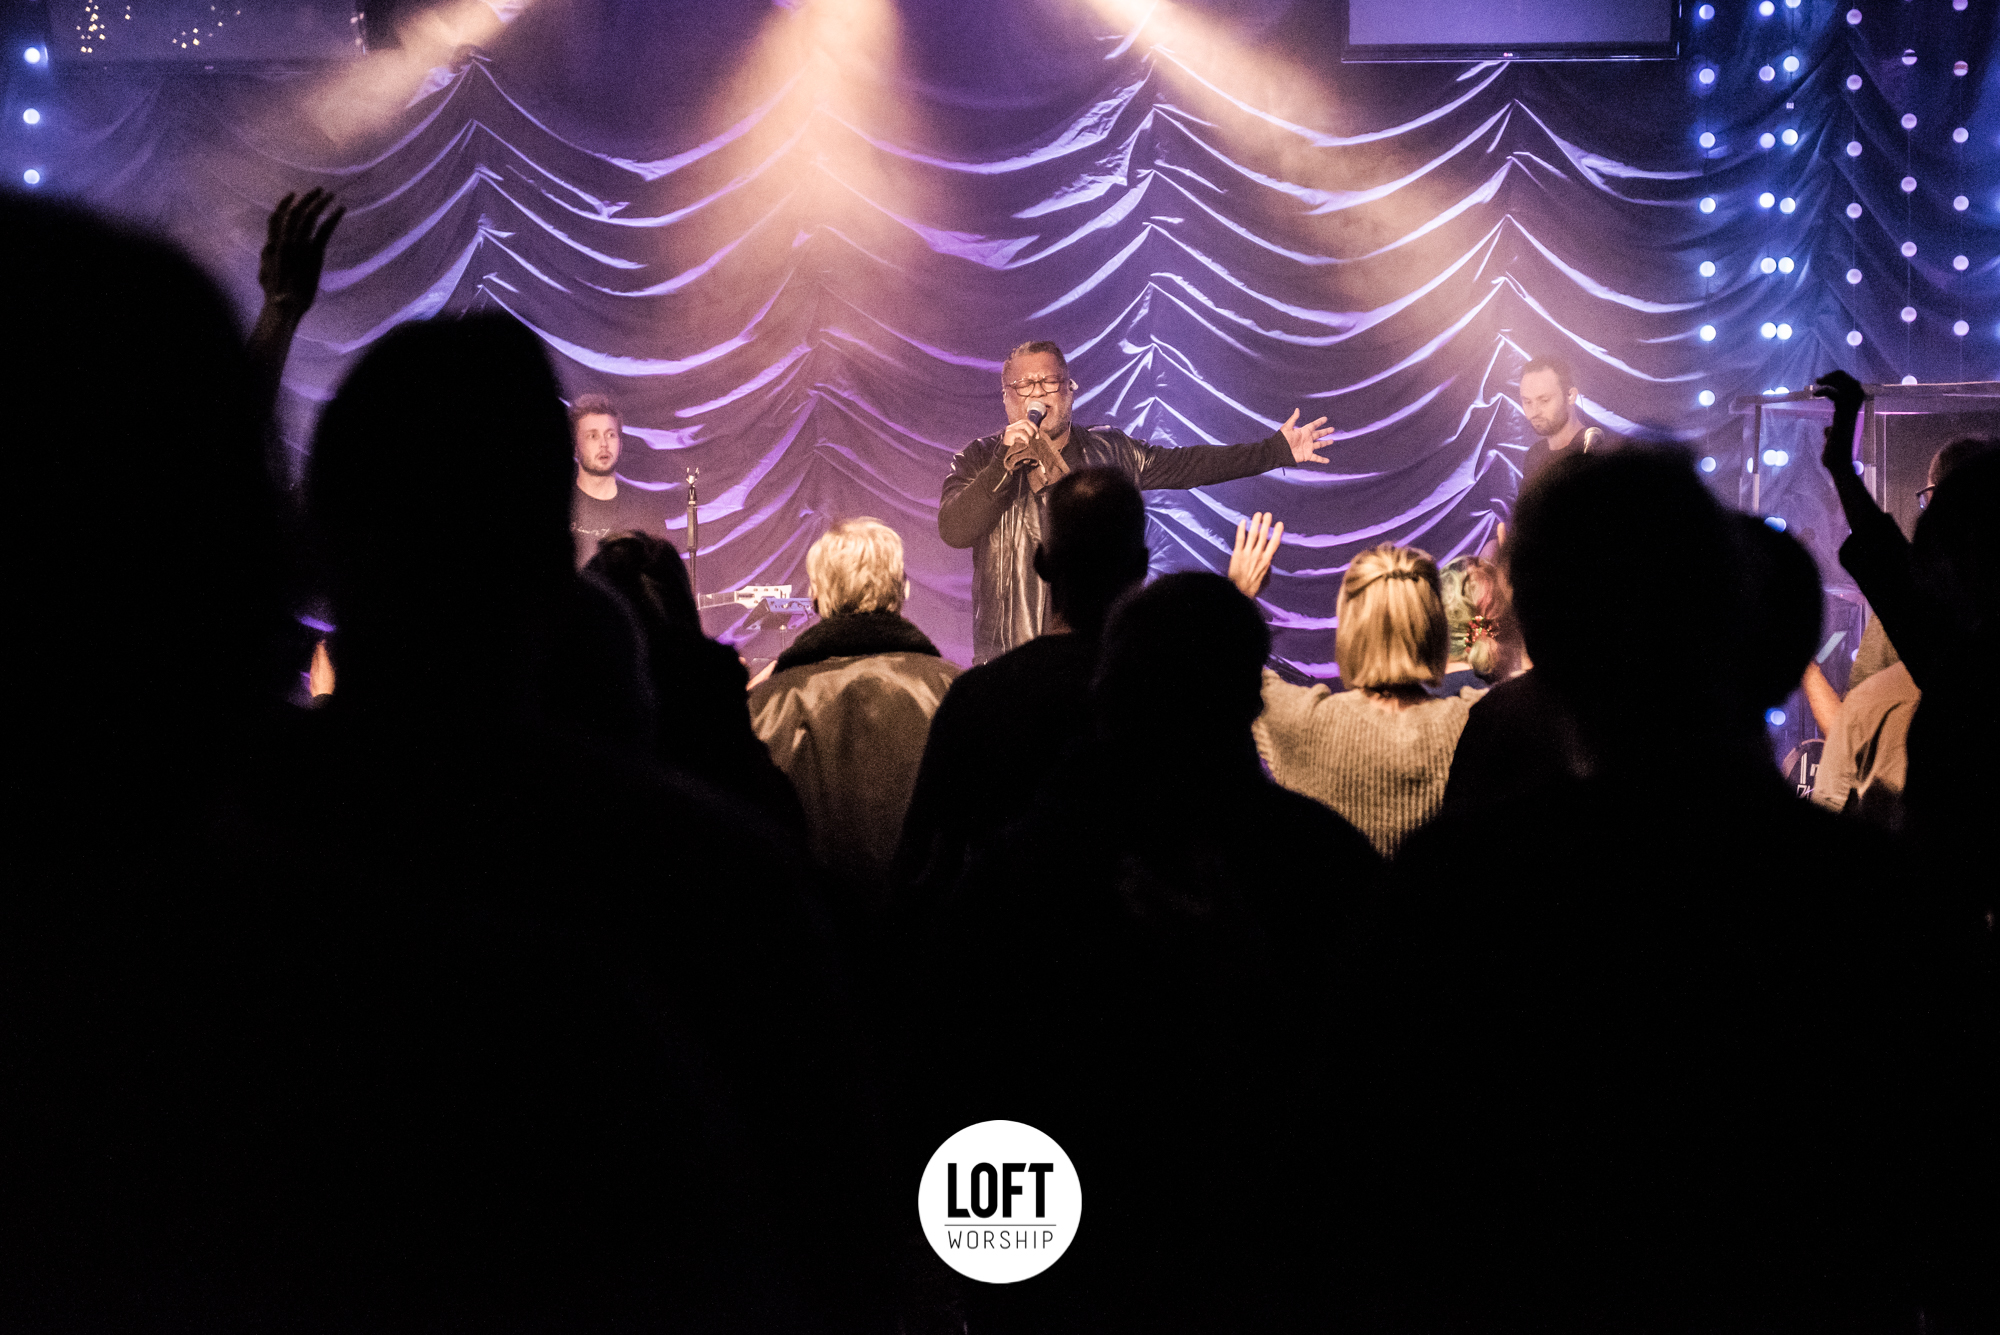 Loft Worship Night 20 December Met Abraham Laisina